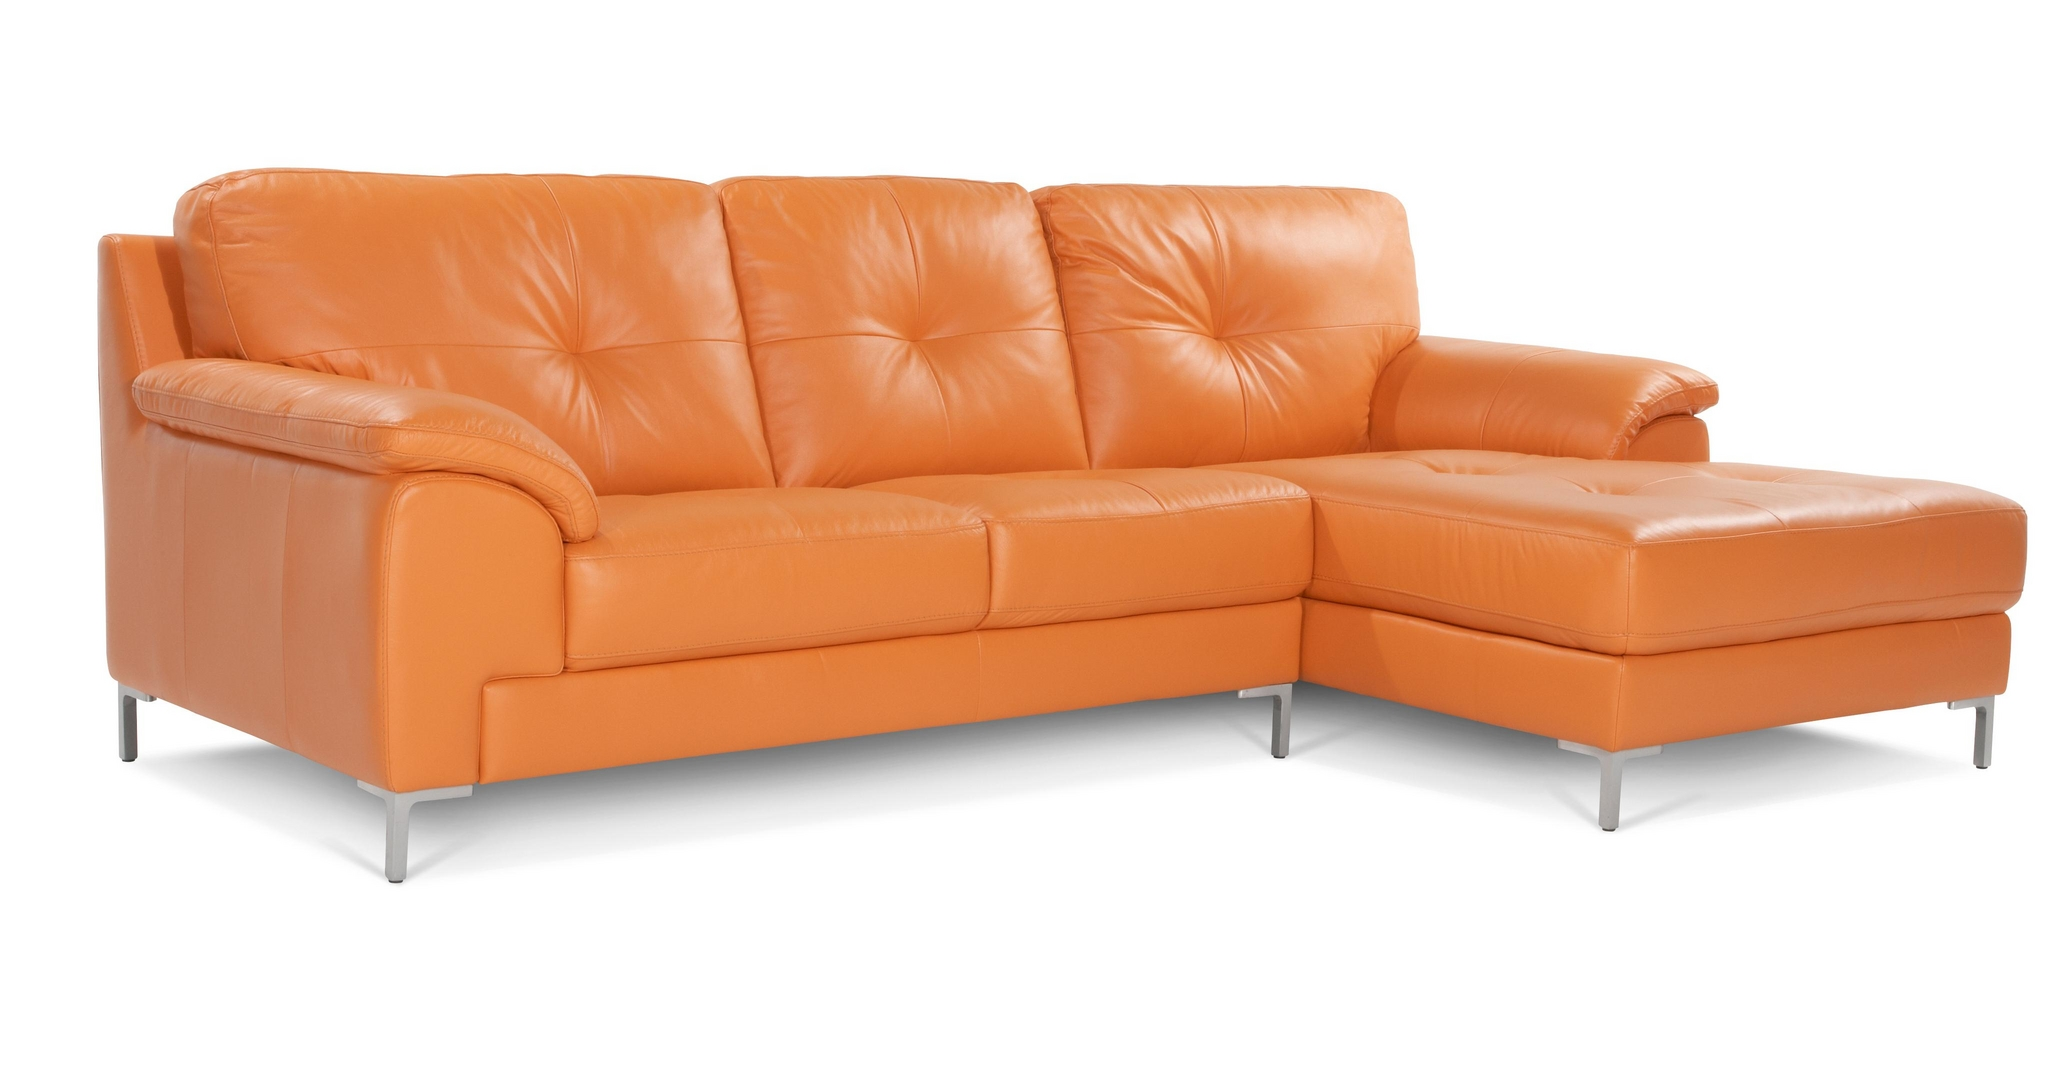 Dfs Ainsley Right Hand Facing 100 Orange Leather Chaise End Sofa Ebay